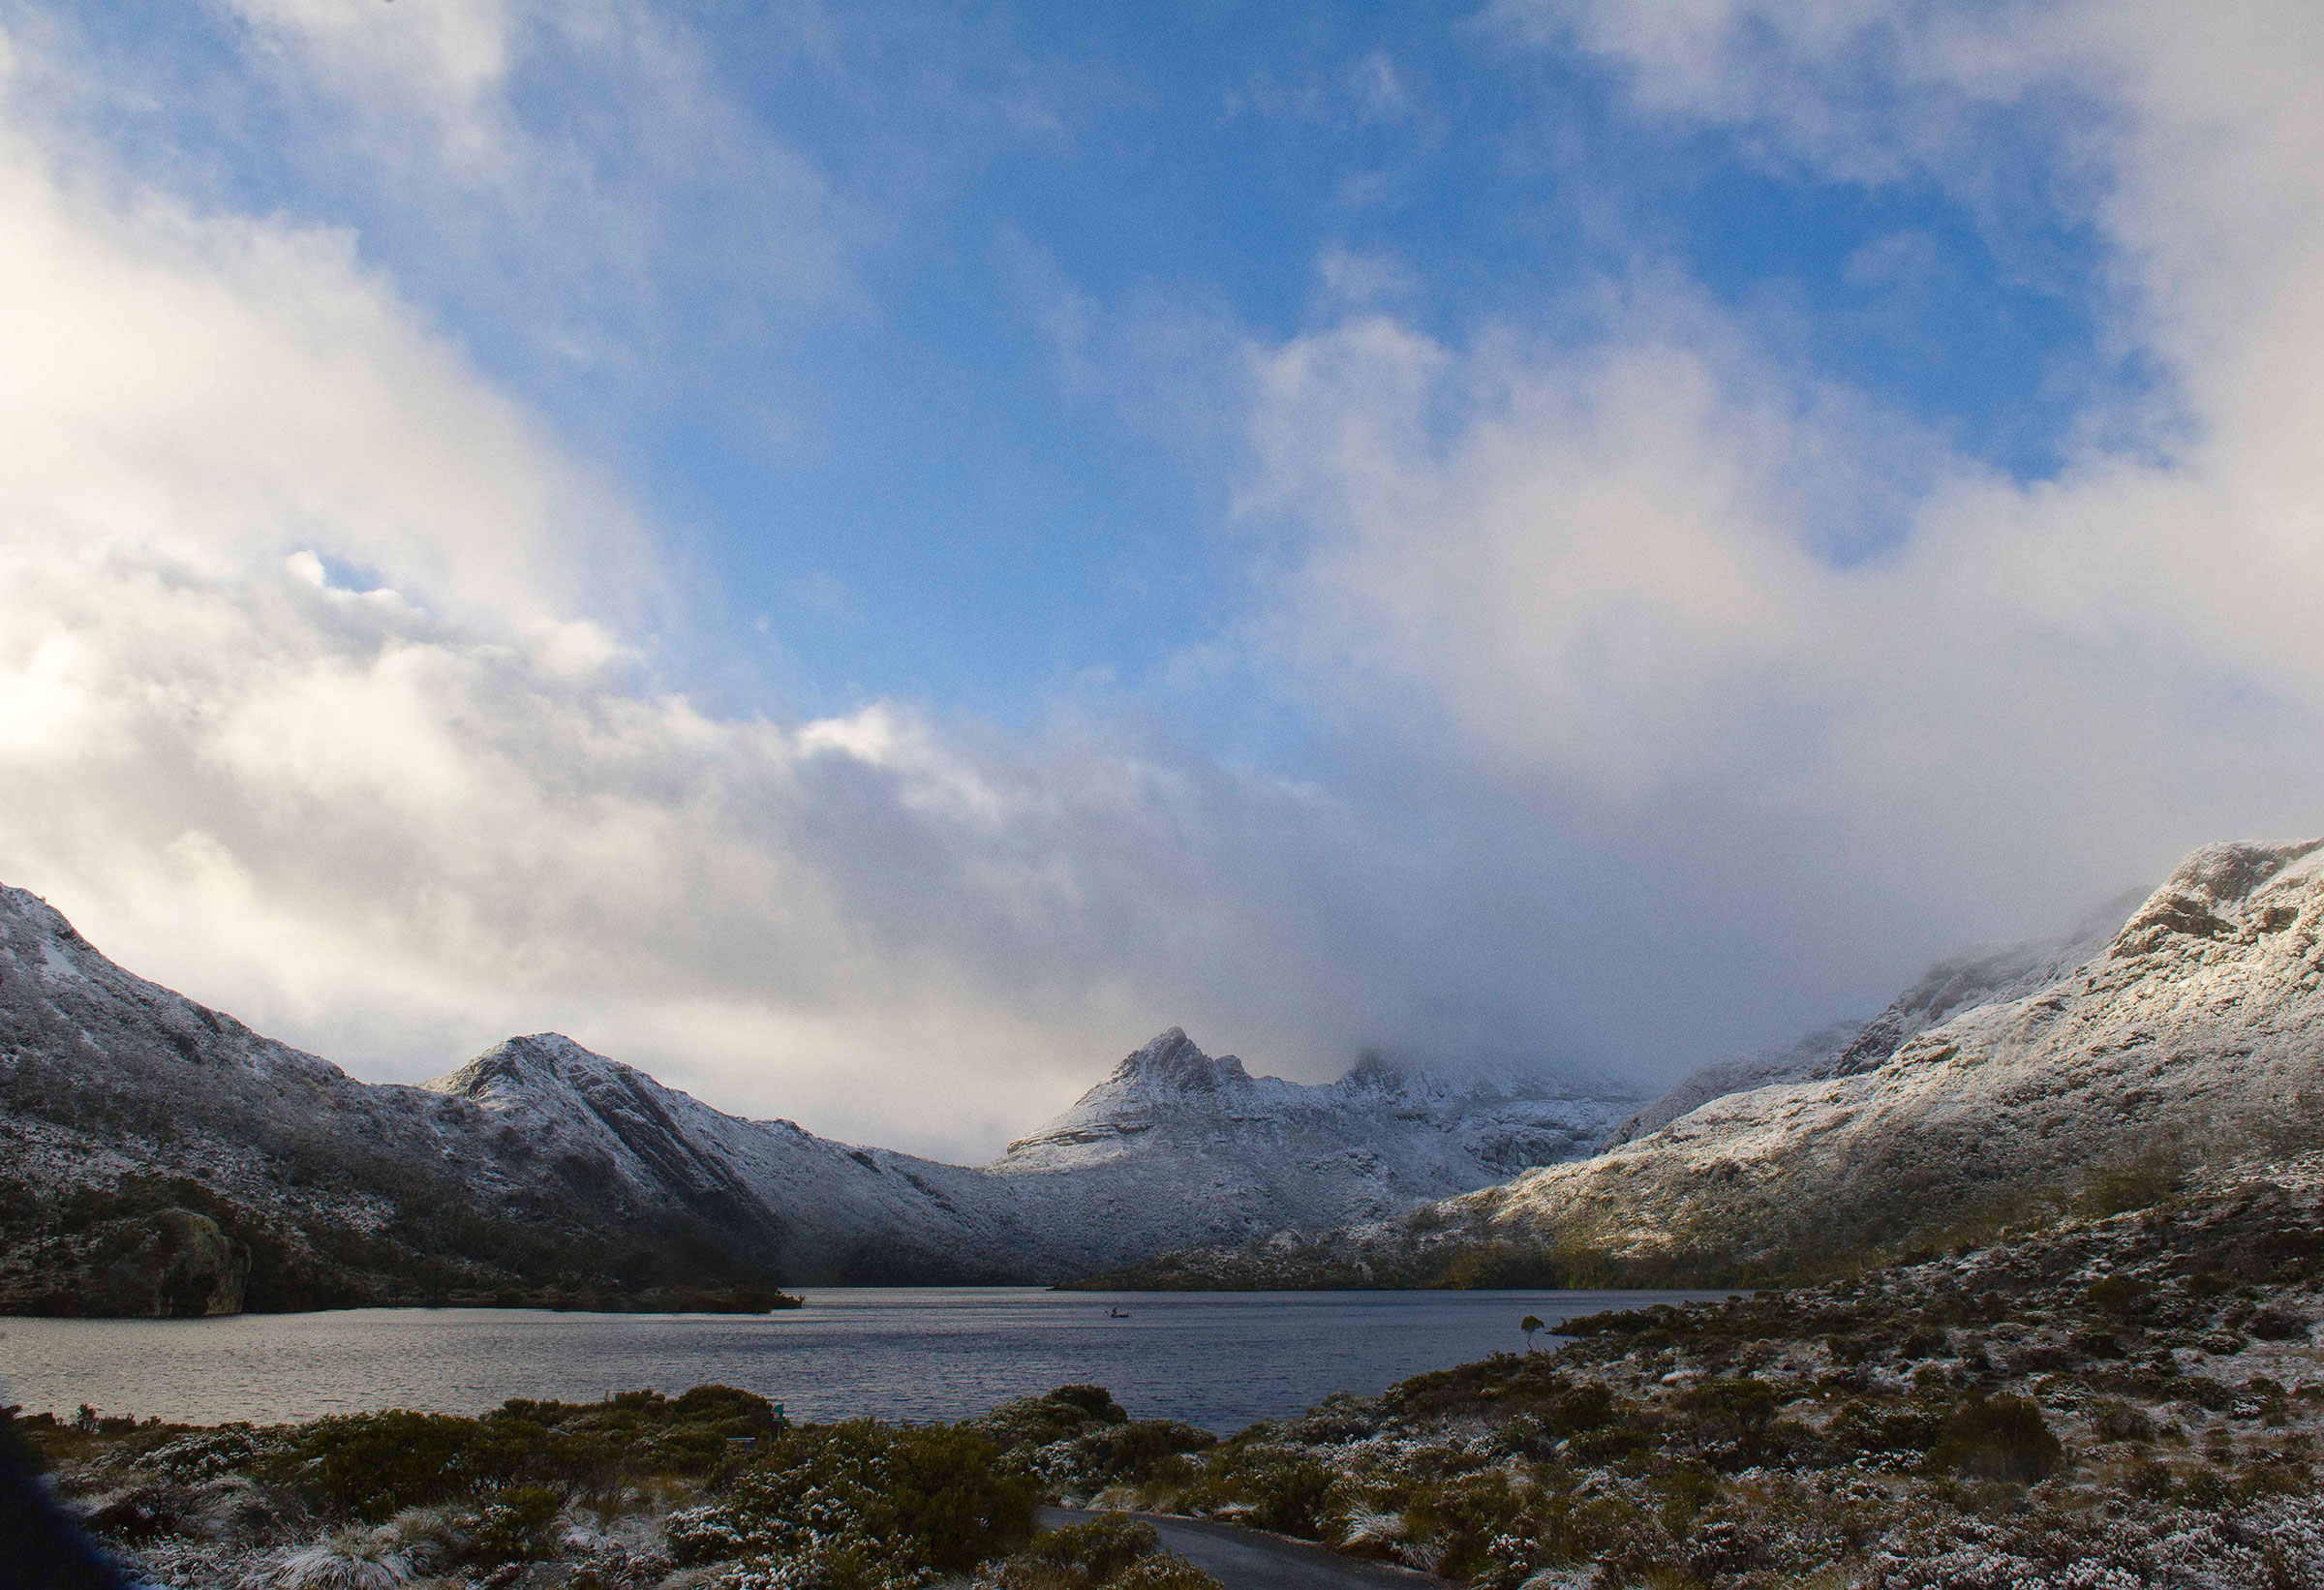 First light on Cradle Mountain, Tasmania, Australia